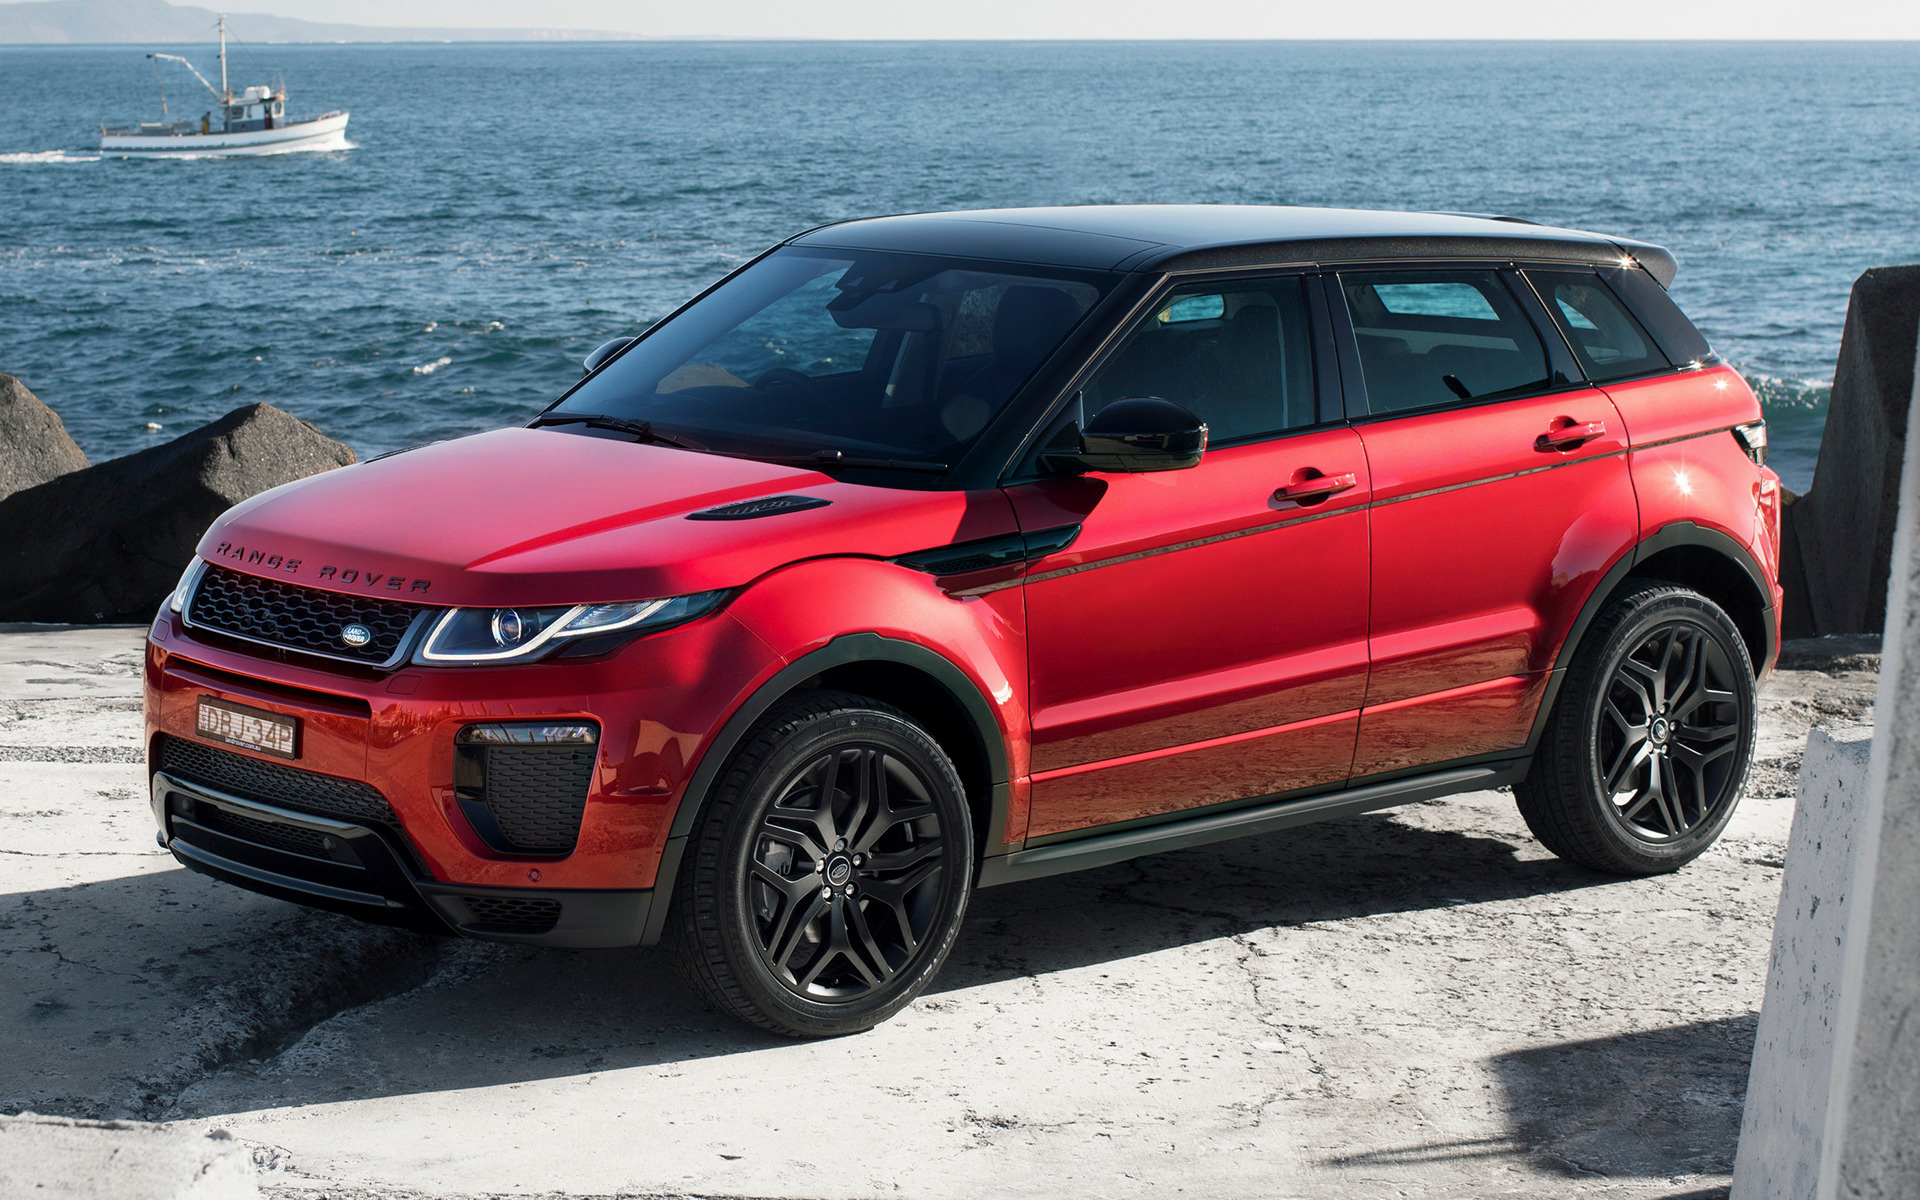 Range Rover Convertible >> 2015 Range Rover Evoque HSE Dynamic (AU) - Wallpapers and ...